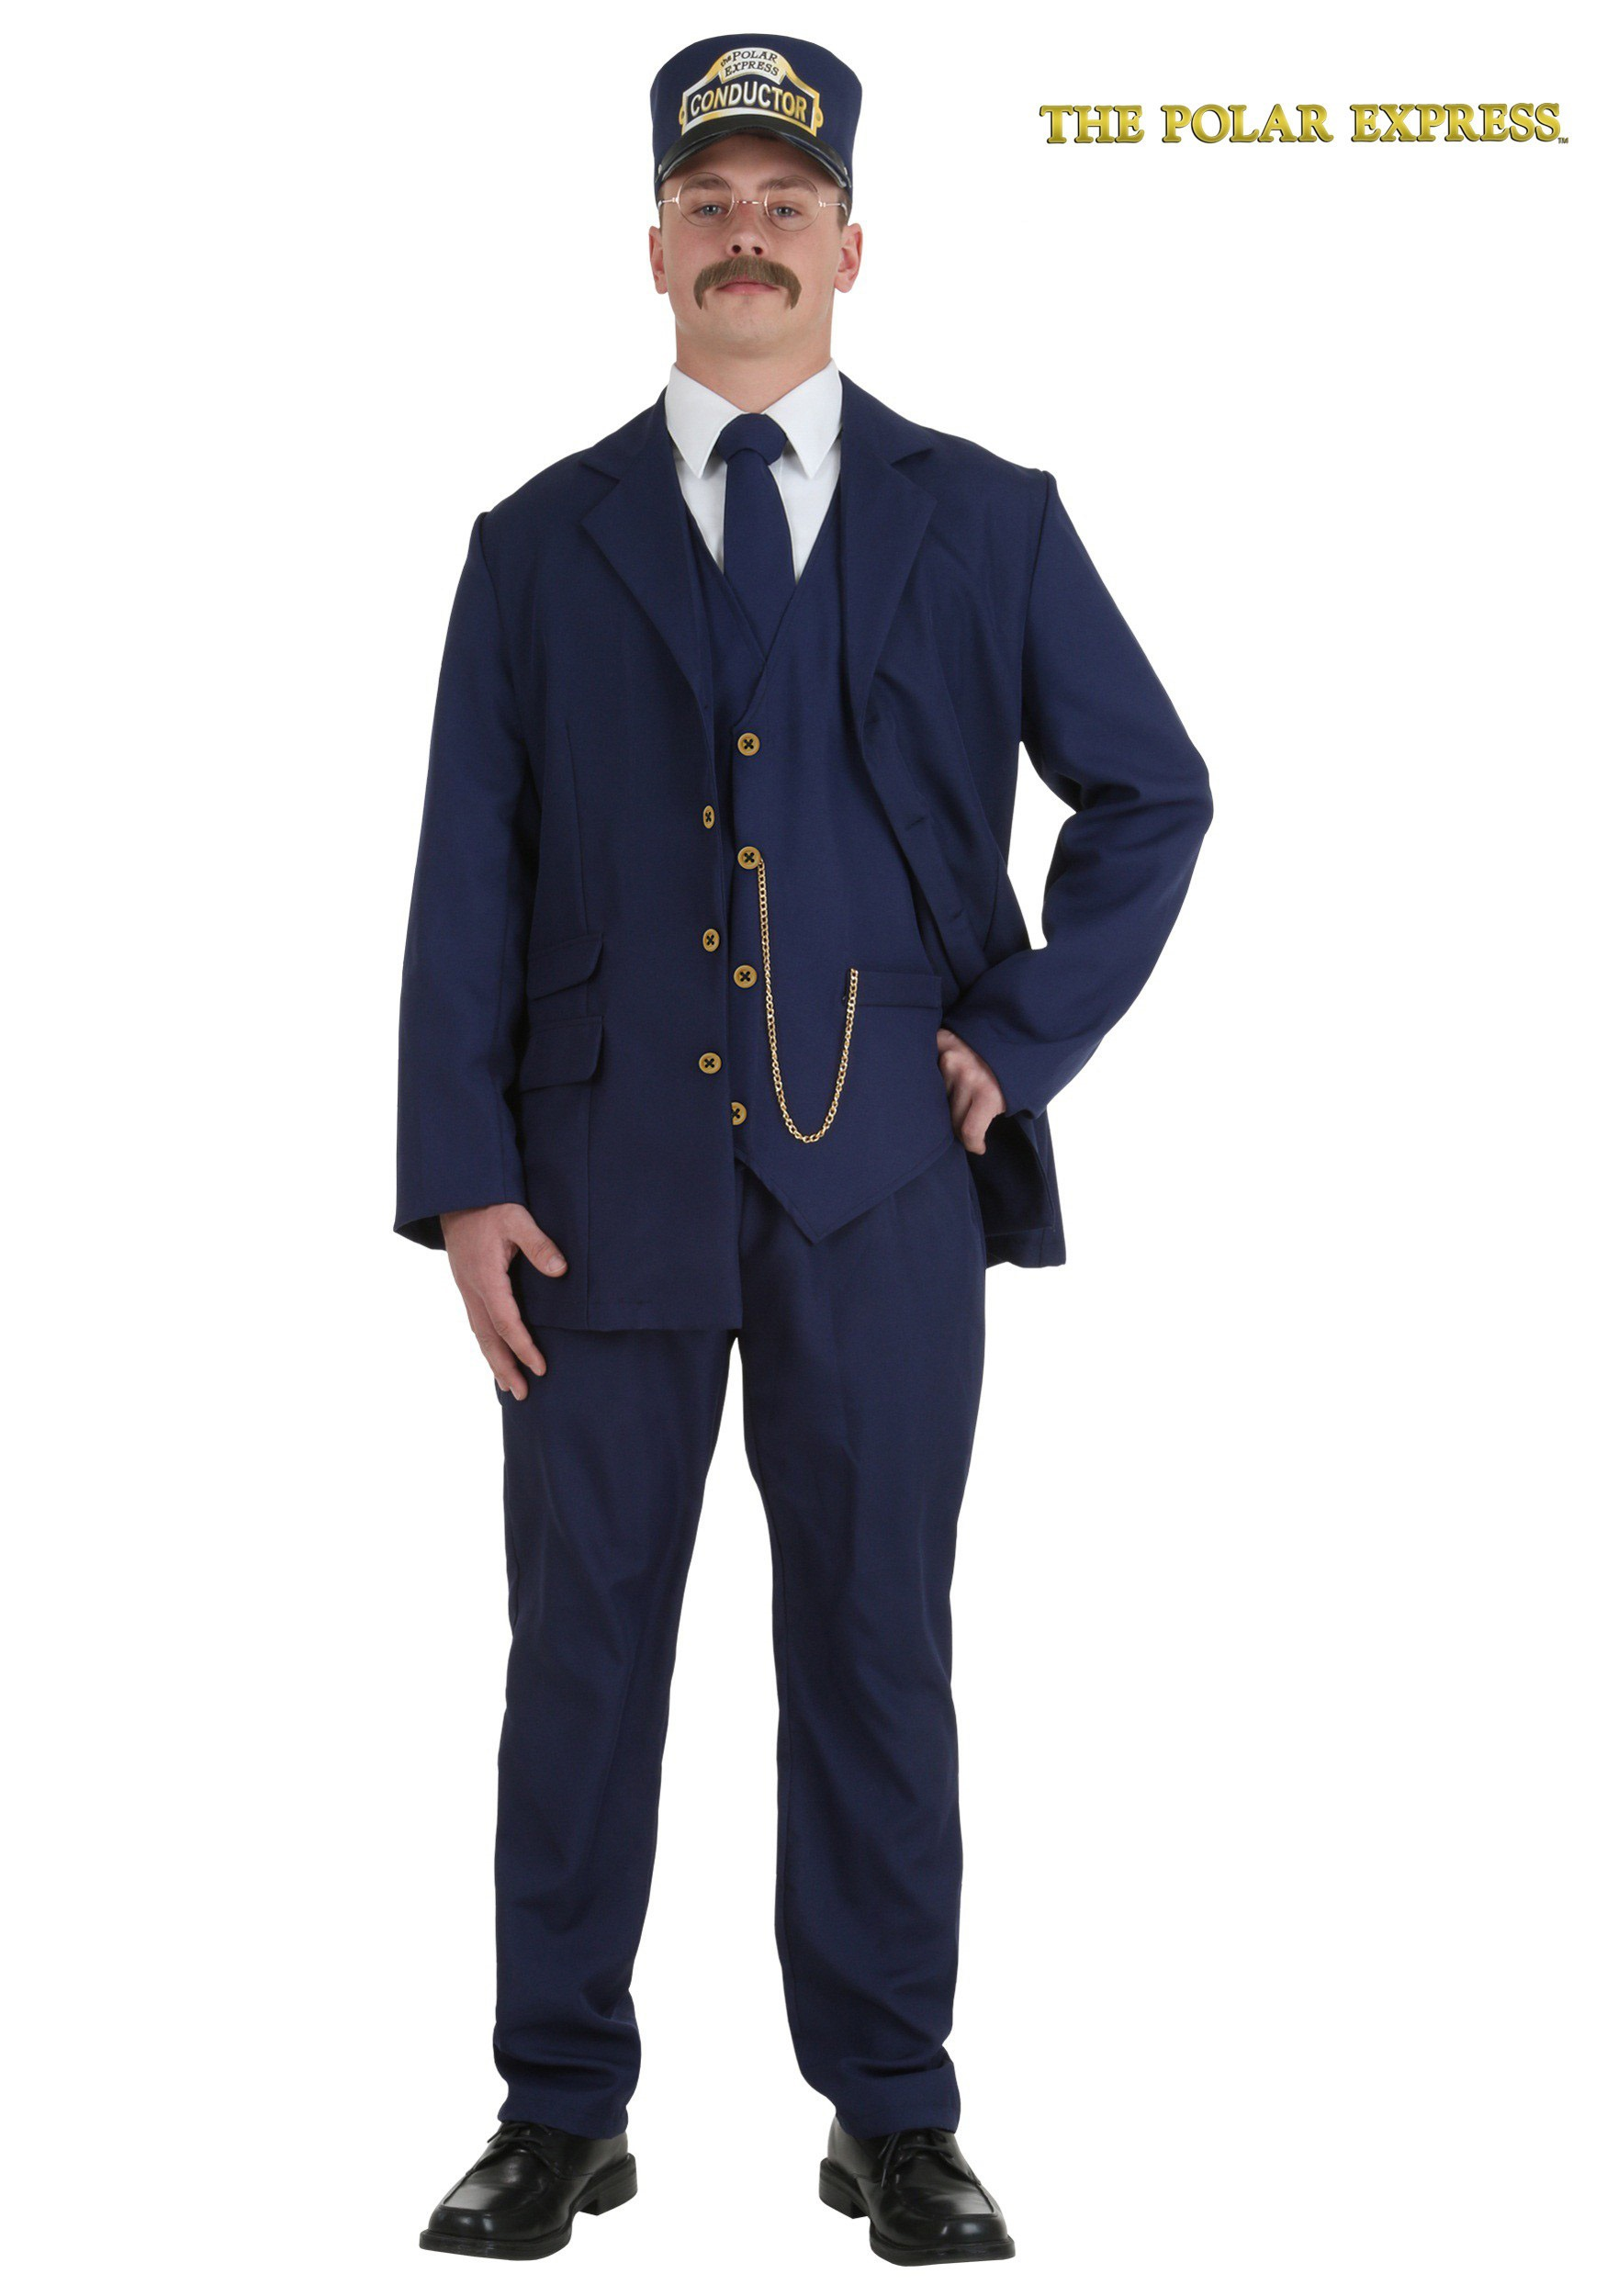 Adult Polar Express Conductor Costume